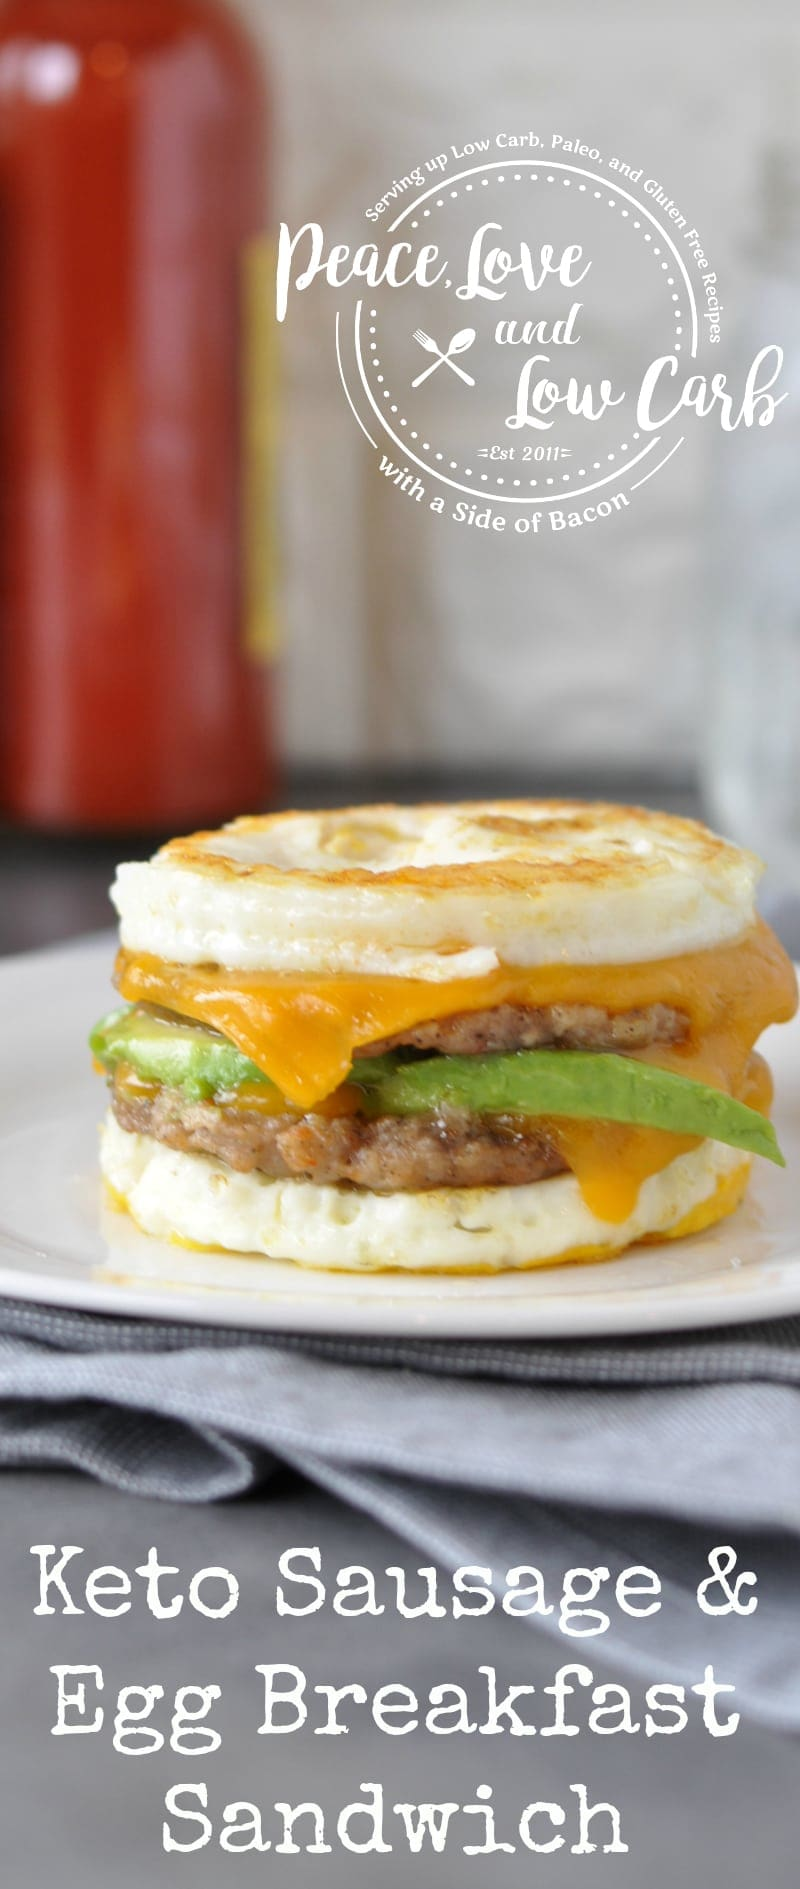 Keto Sausage and Egg Breakfast Sandwich | Peace Love and Low Carb